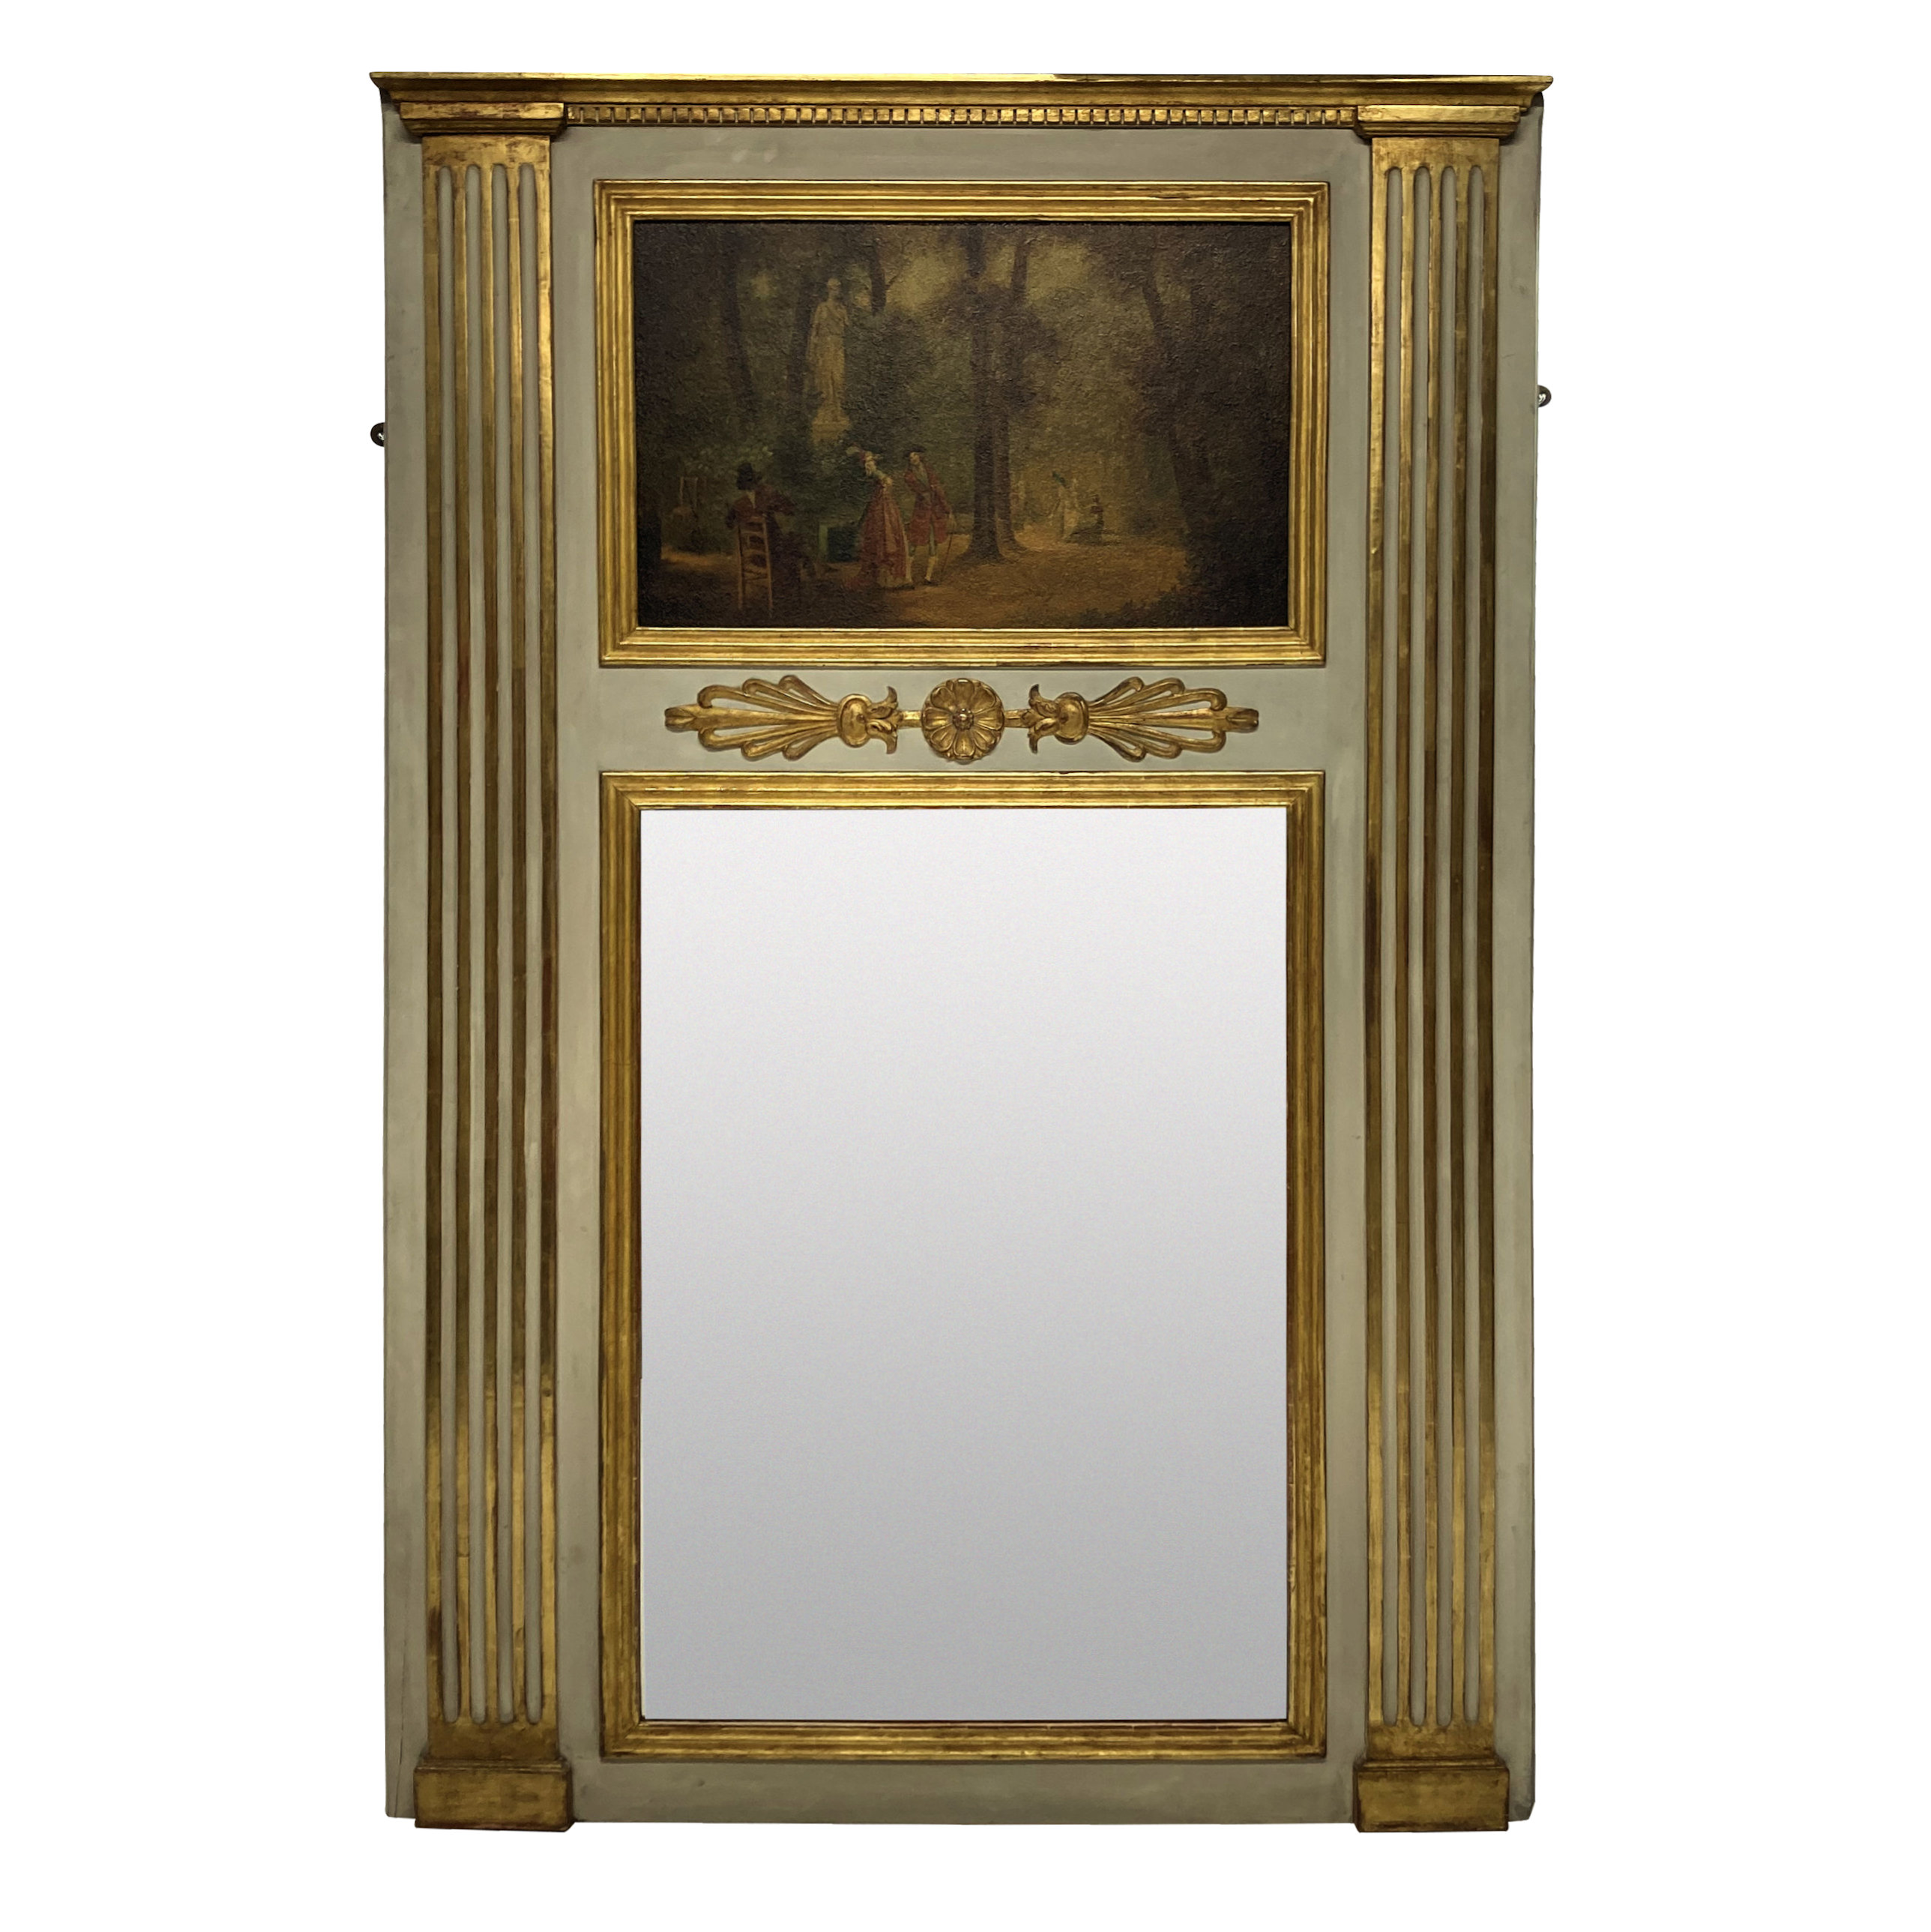 A FRENCH PAINTED & GILDED TRUMEAU MIRROR WITH PAINTED PANEL